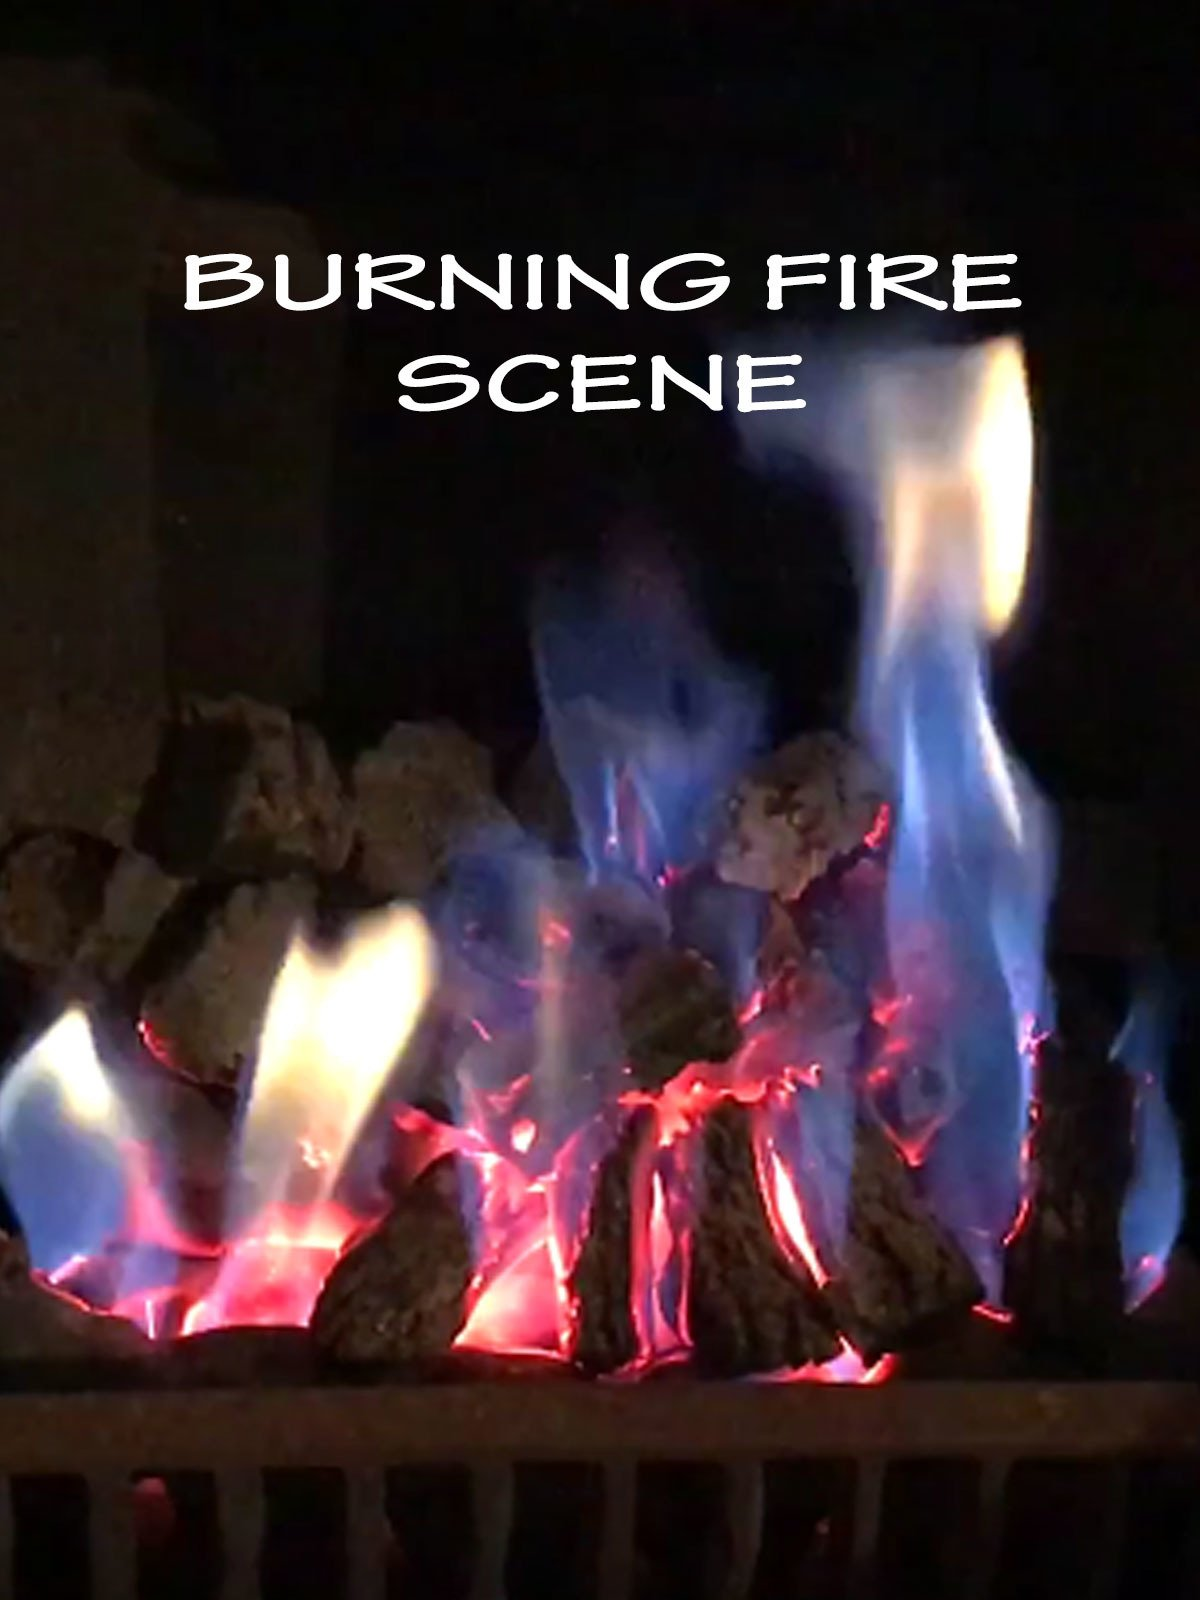 Burning Fire Scene